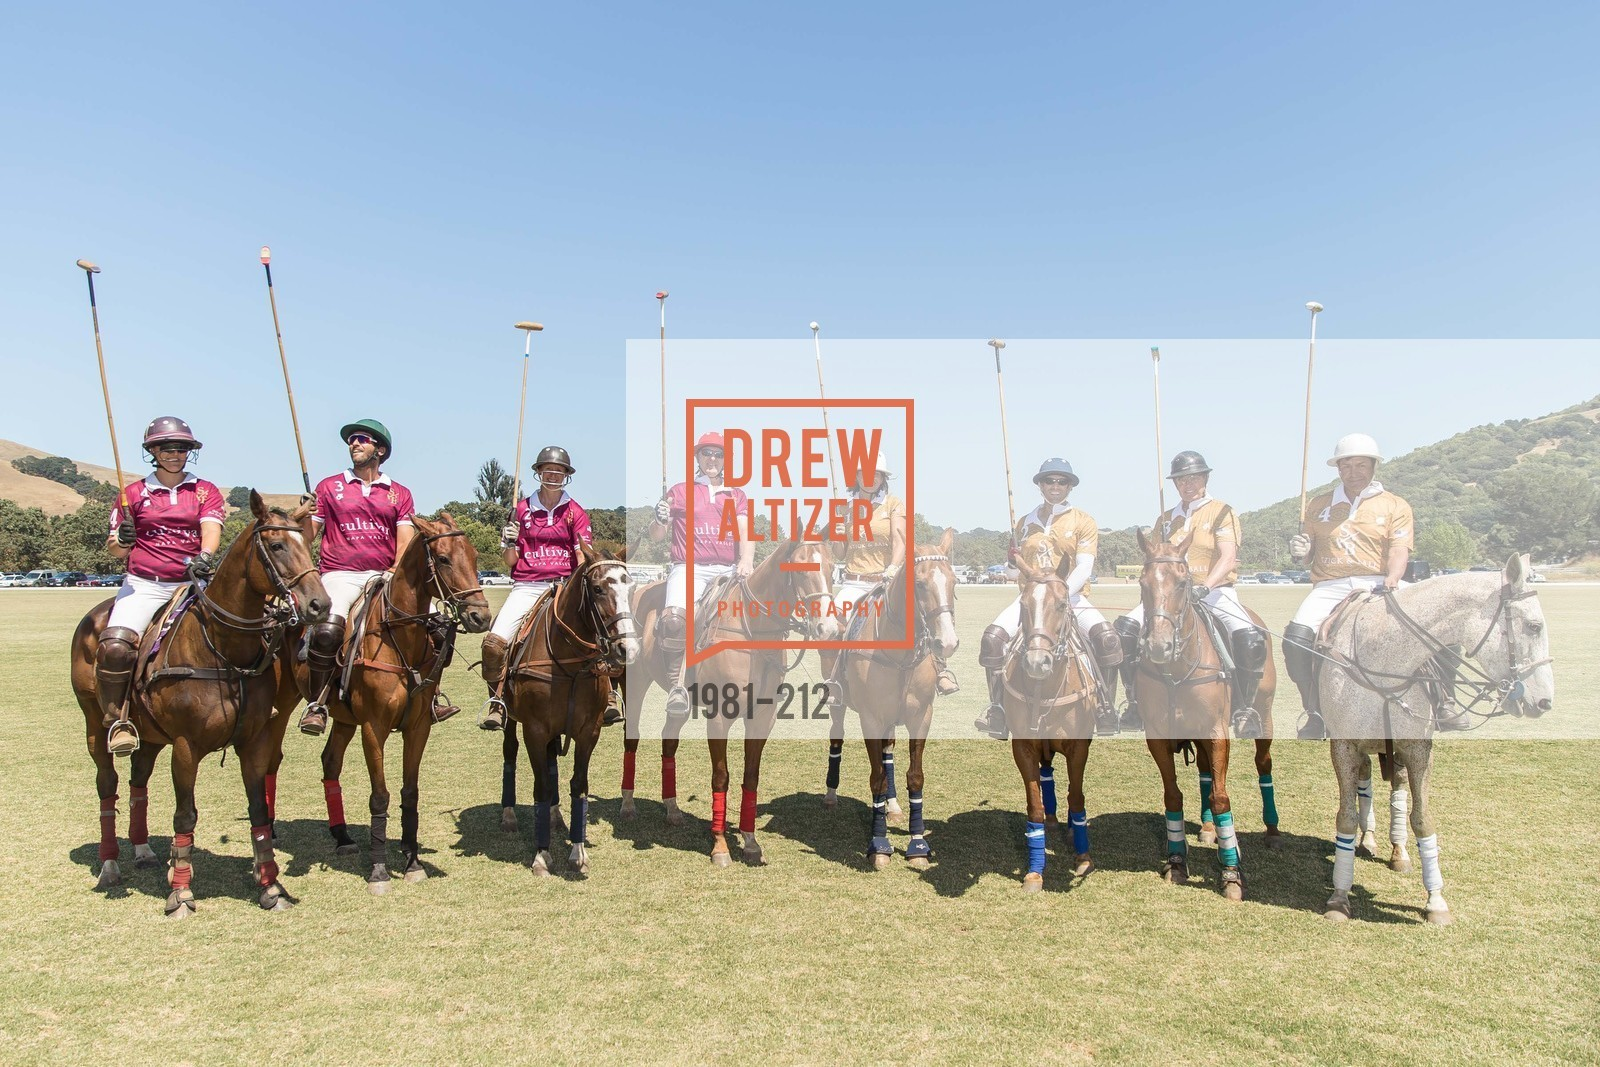 Margo Buchanan, Jess Scheraga, Heather Lake, Richard Biley, Elizabeth Welborn, Pat Nesbitt, Santos Arriola, Stick & Ball Oyster Cup Polo Tournament, Cerro Pampa Polo Club, July 25th, 2015,Drew Altizer, Drew Altizer Photography, full-service agency, private events, San Francisco photographer, photographer california